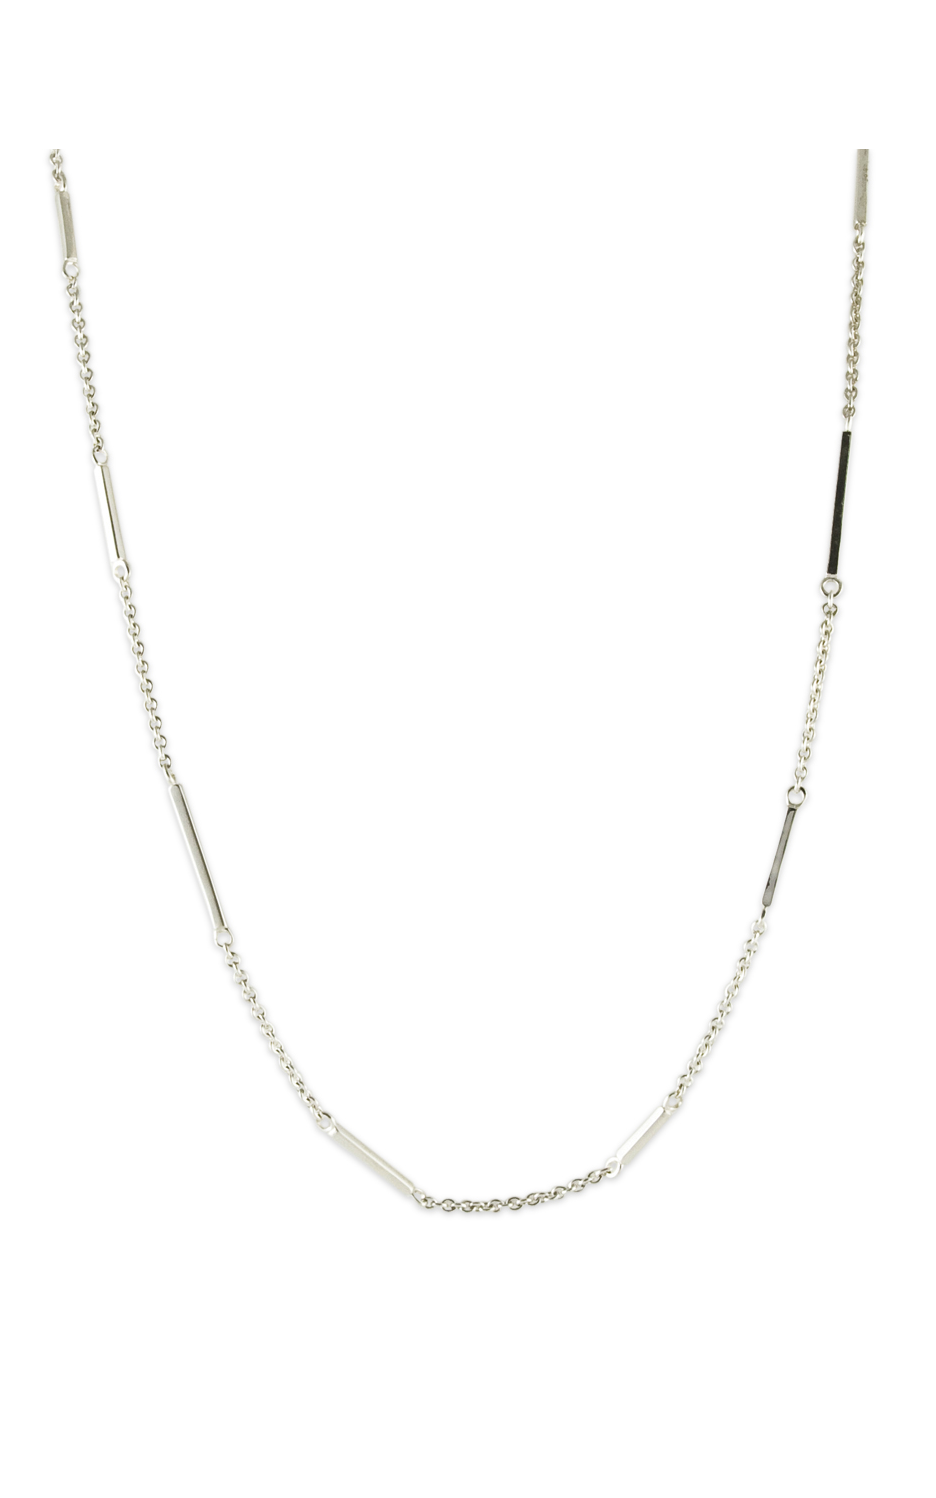 Zina Contemporary Necklace A296-17 product image